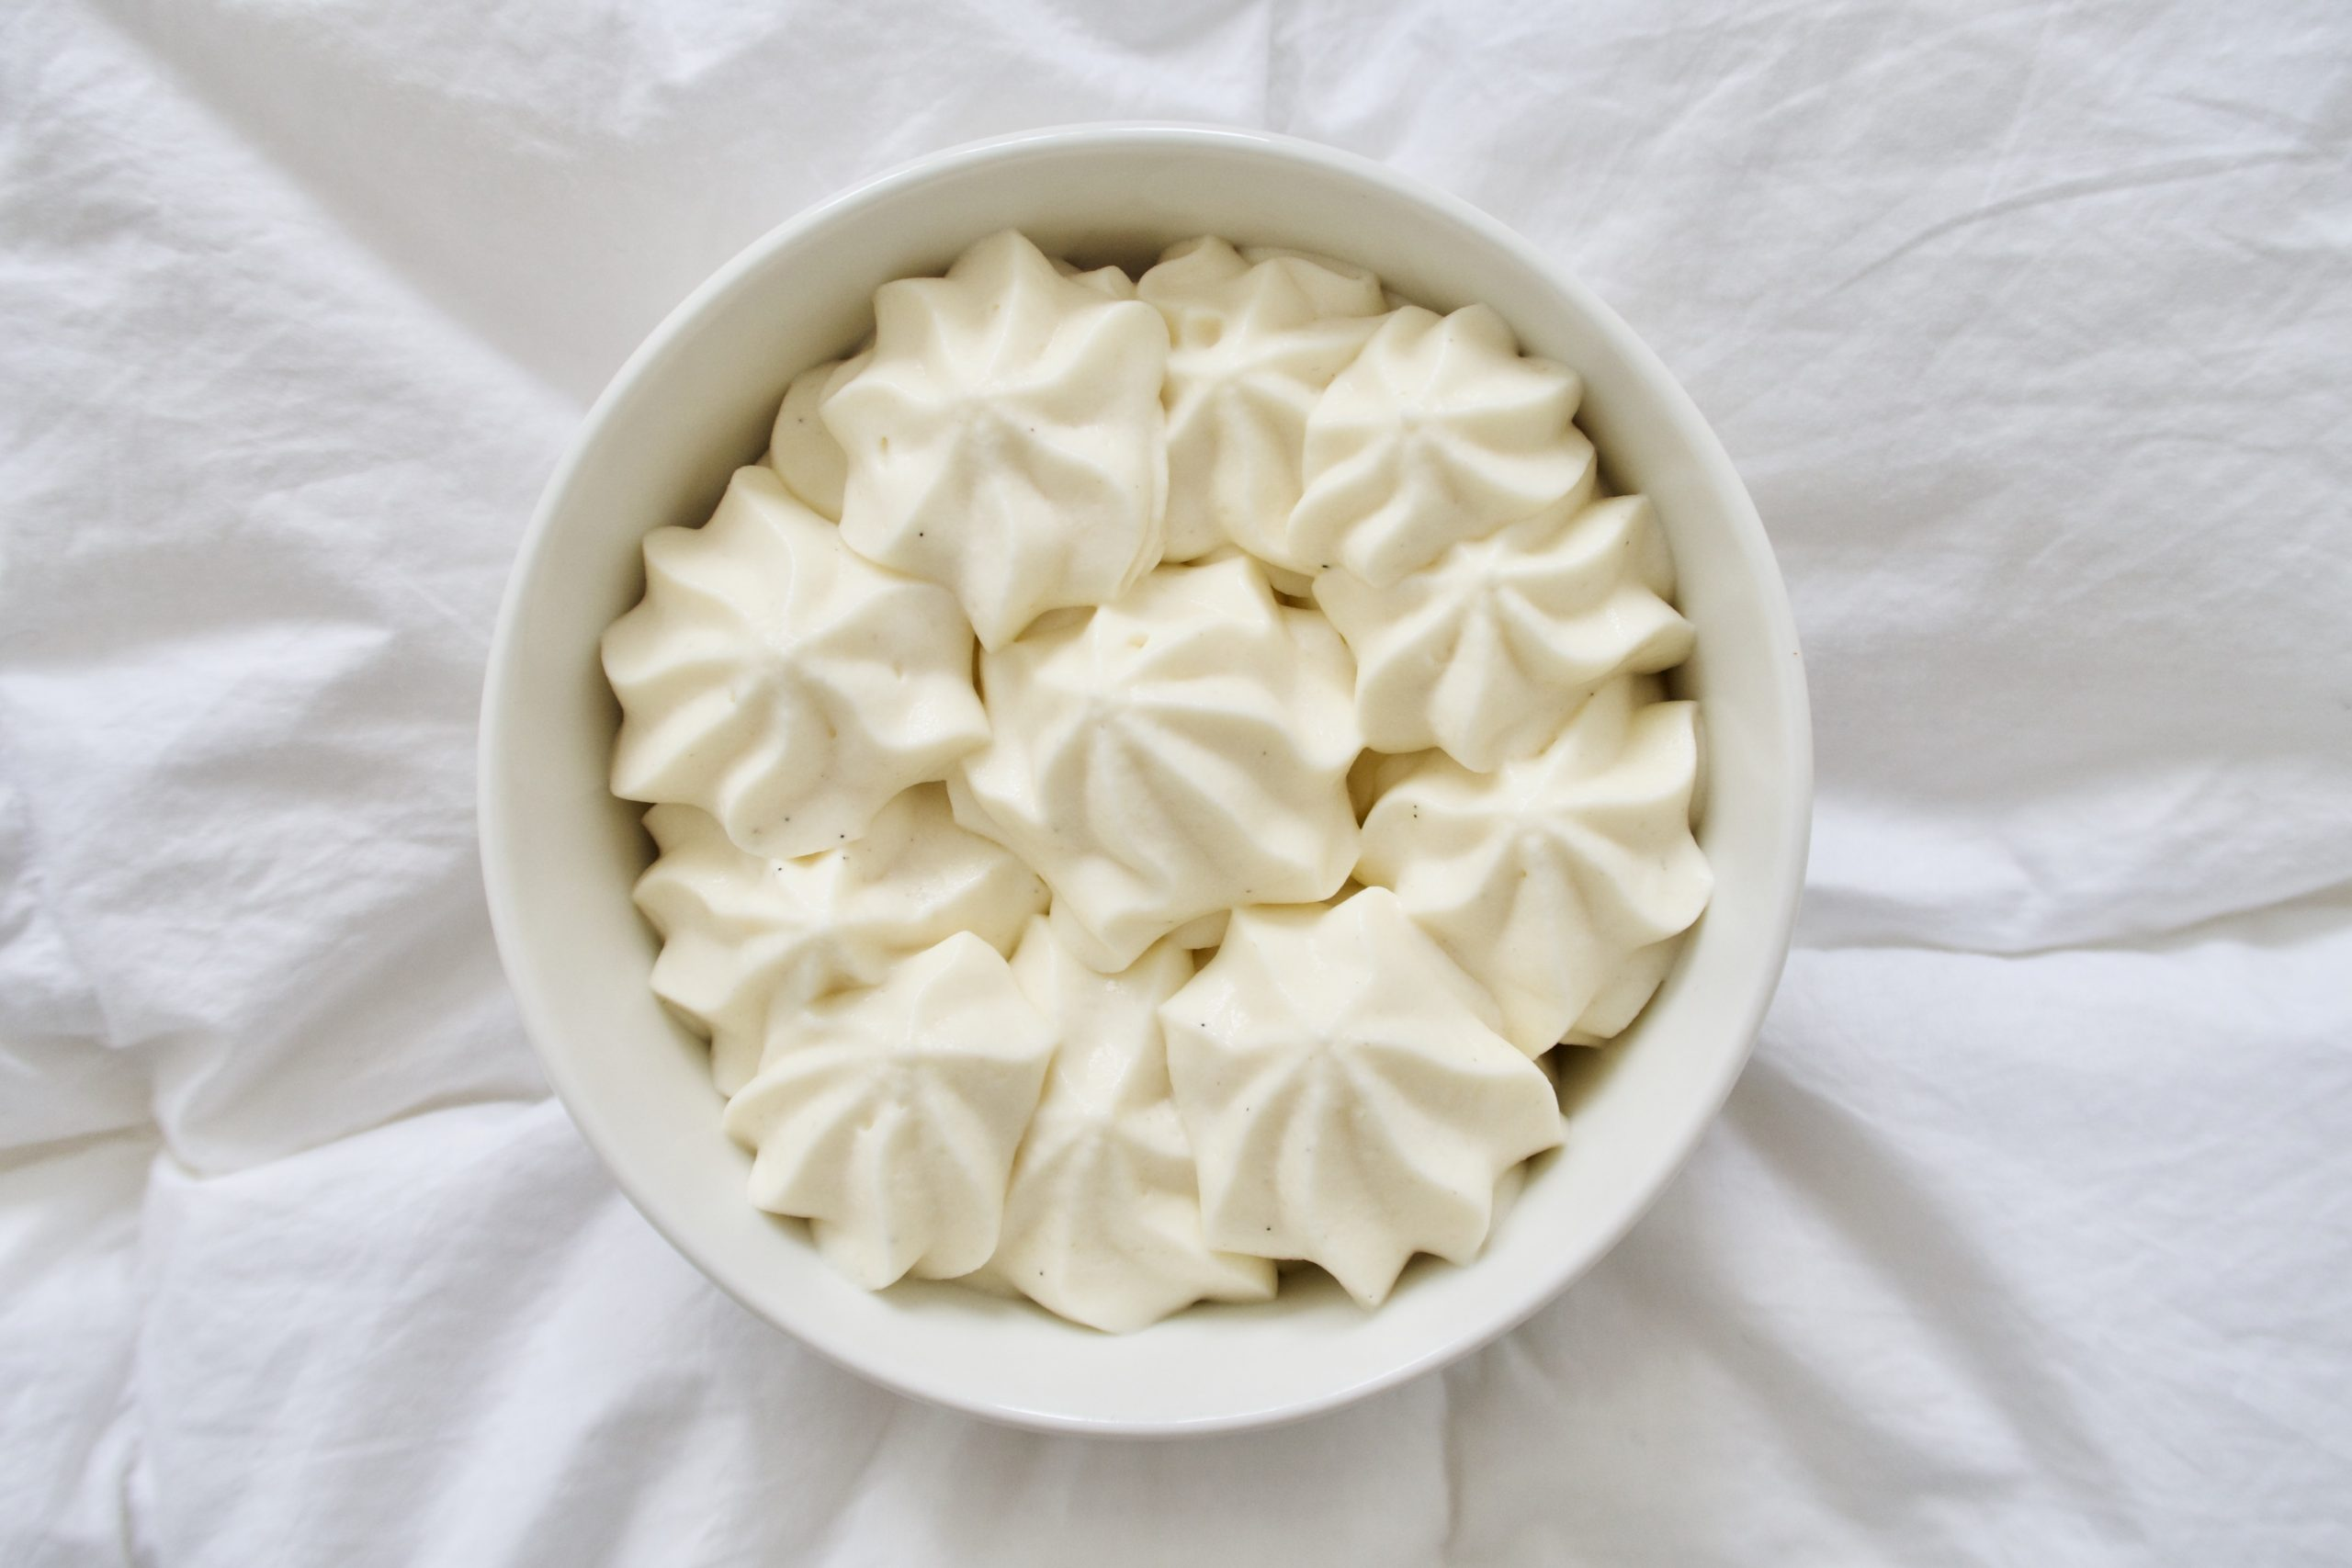 A bowl of diplomat cream on a white background